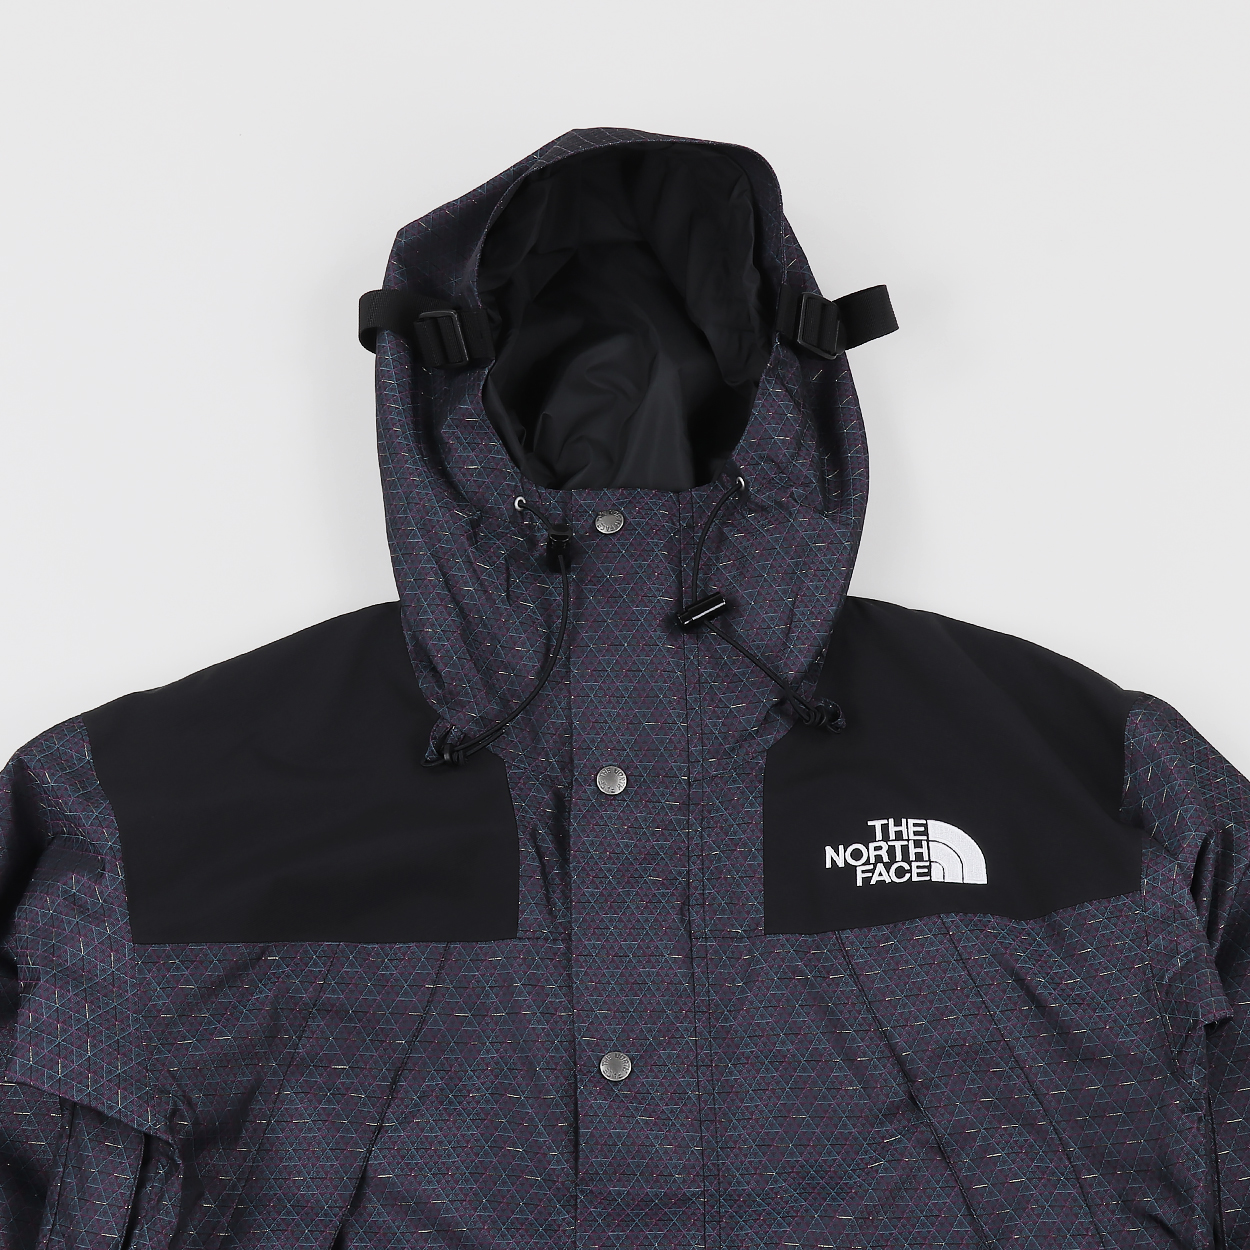 d24fa5bce The North Face Mens CMYK 1990 Mountain Jacket Engineered Jacquard ...